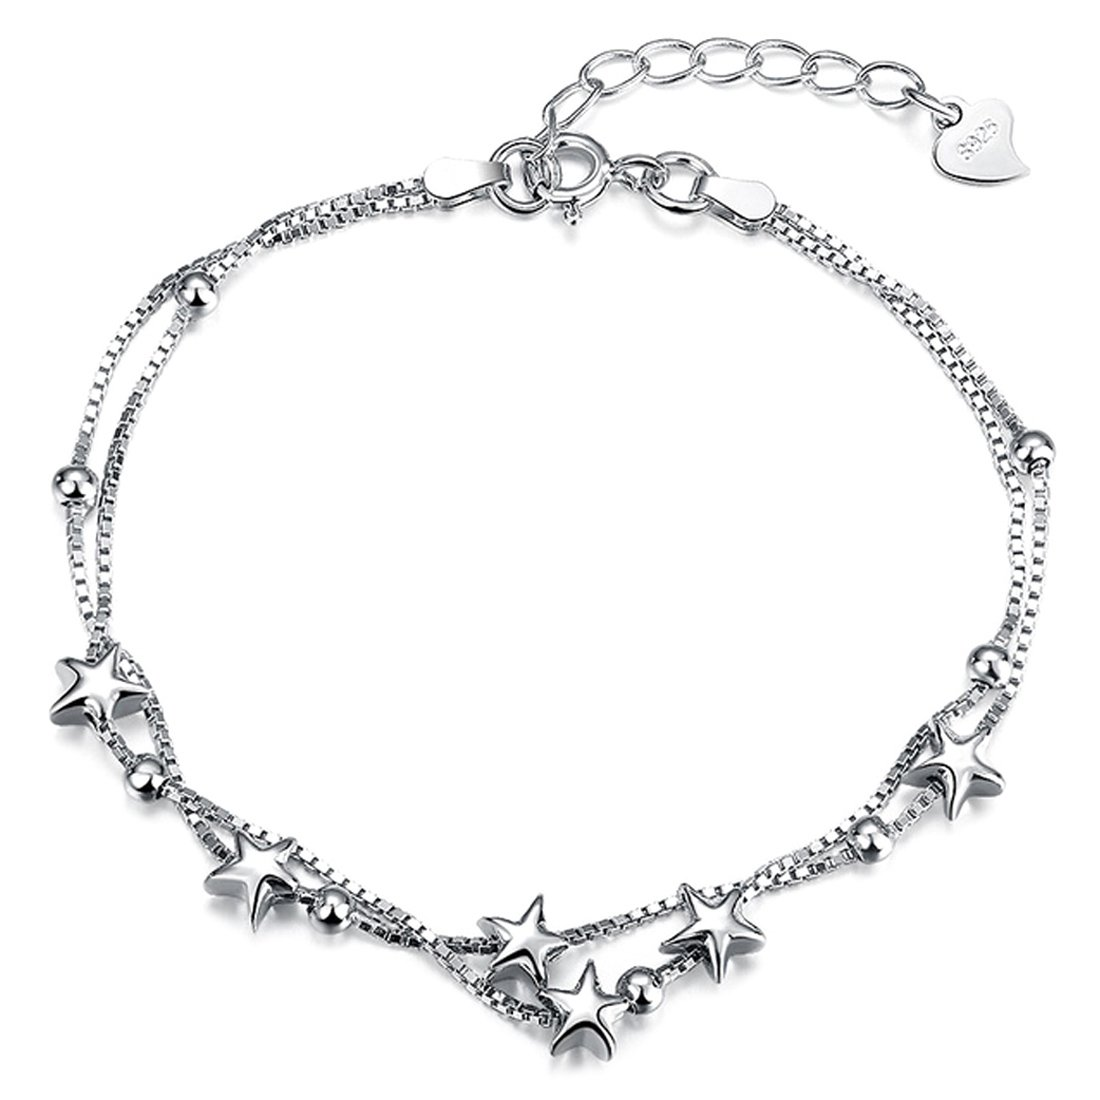 Sterling Silver Charm Bracelet Adjustable BFF Jewellery Gift for Women Beads and Stars Double Layered Box Chain 8 Inch